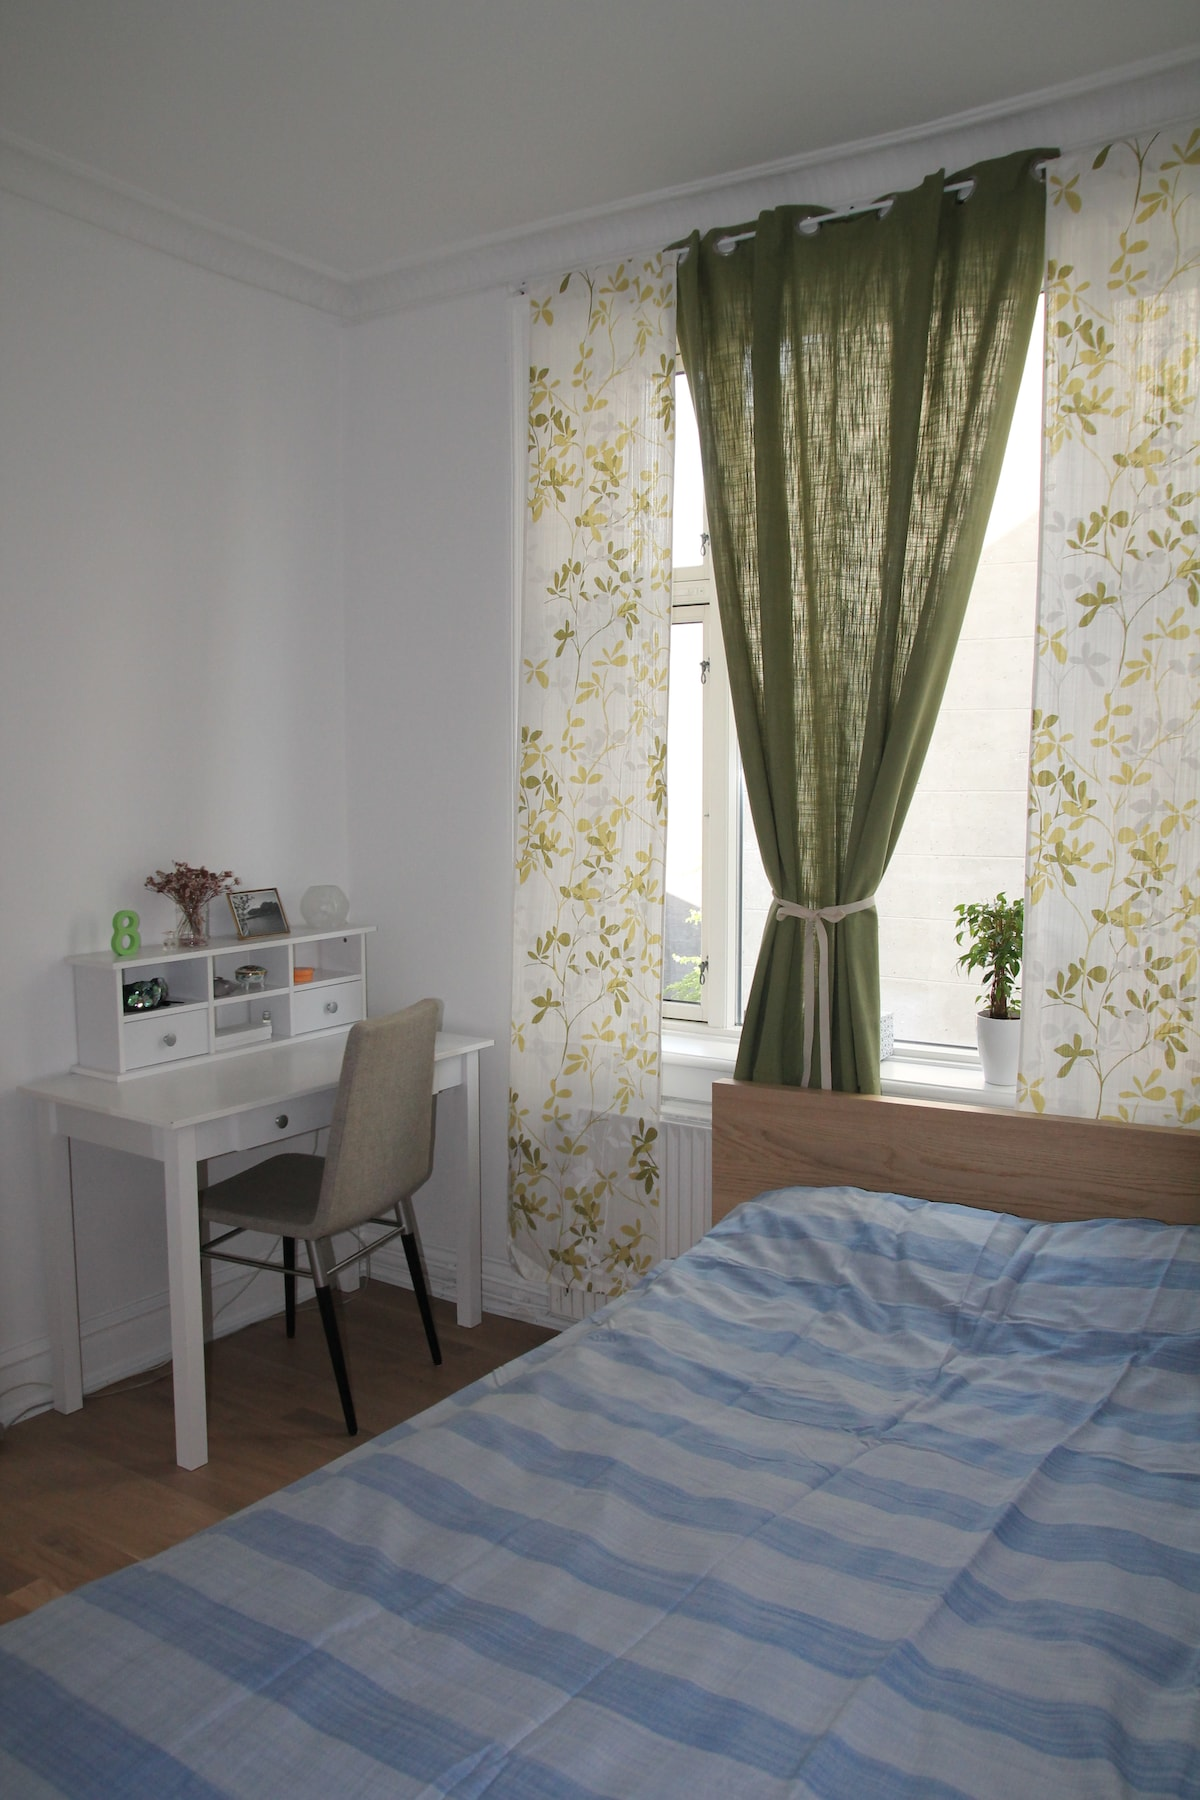 Good size bedroom with desk space